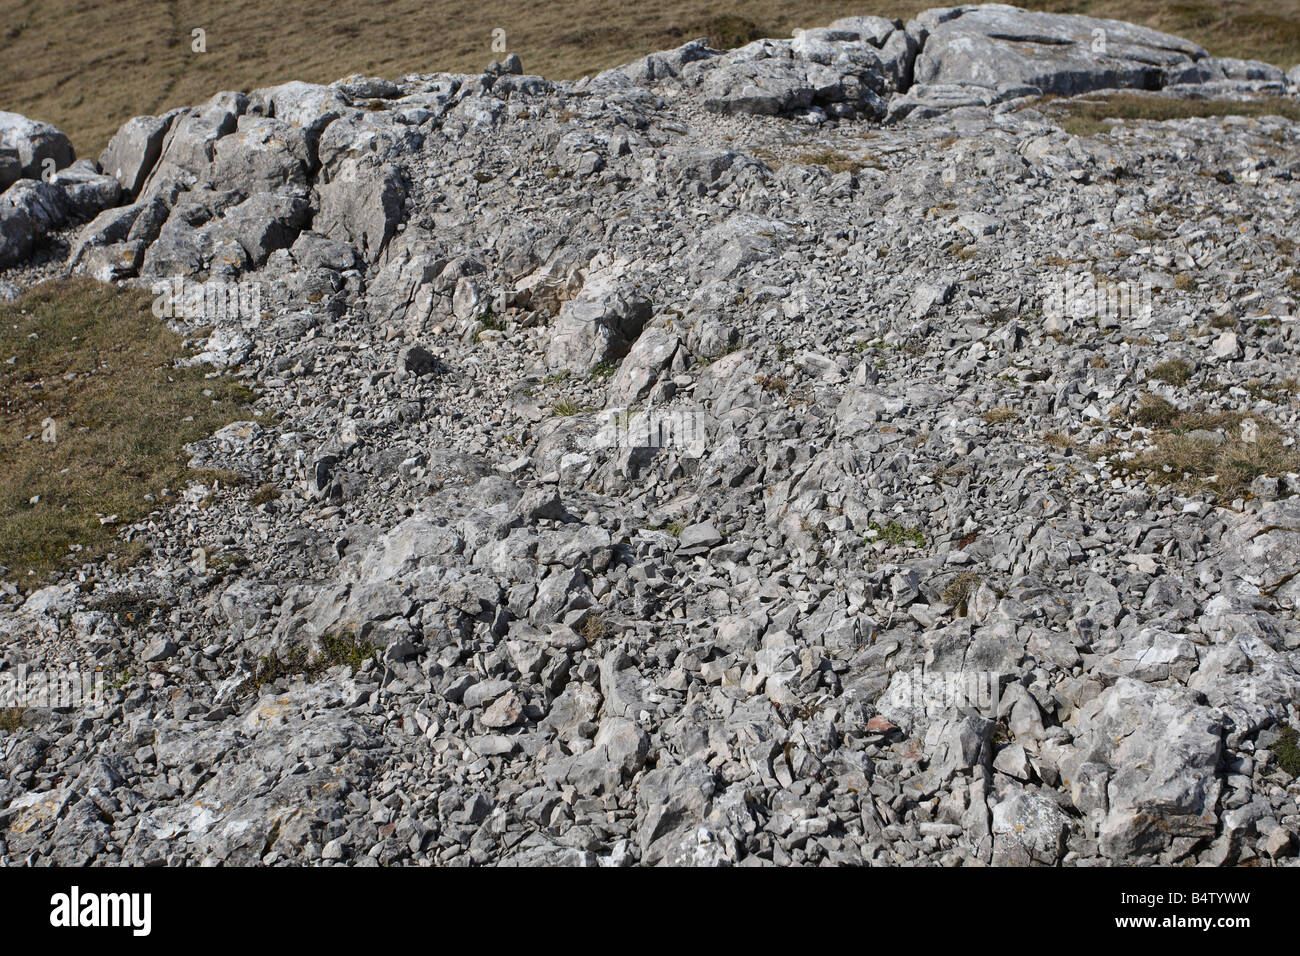 LIMESTONE ESCARPMENT SHOWING SIGNS OF EROSION DUE TO WIND FROST AND RAIN - Stock Image